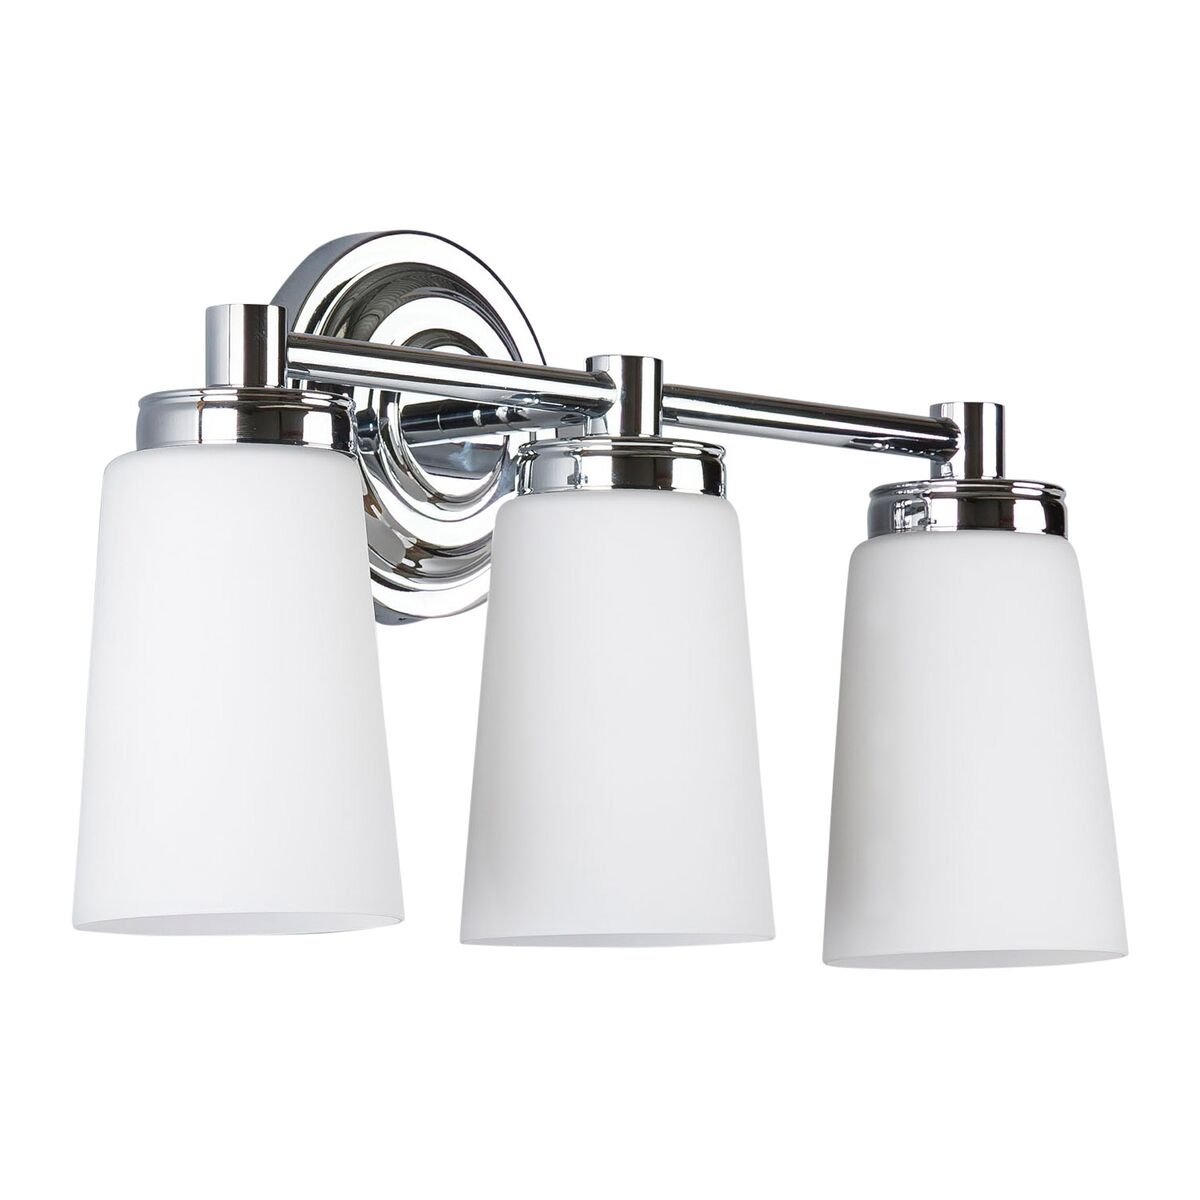 Sheffield 3 Light Bathroom Vanity Chrome w Frosted Glass Linea di Liara LL-WL260-3-PC